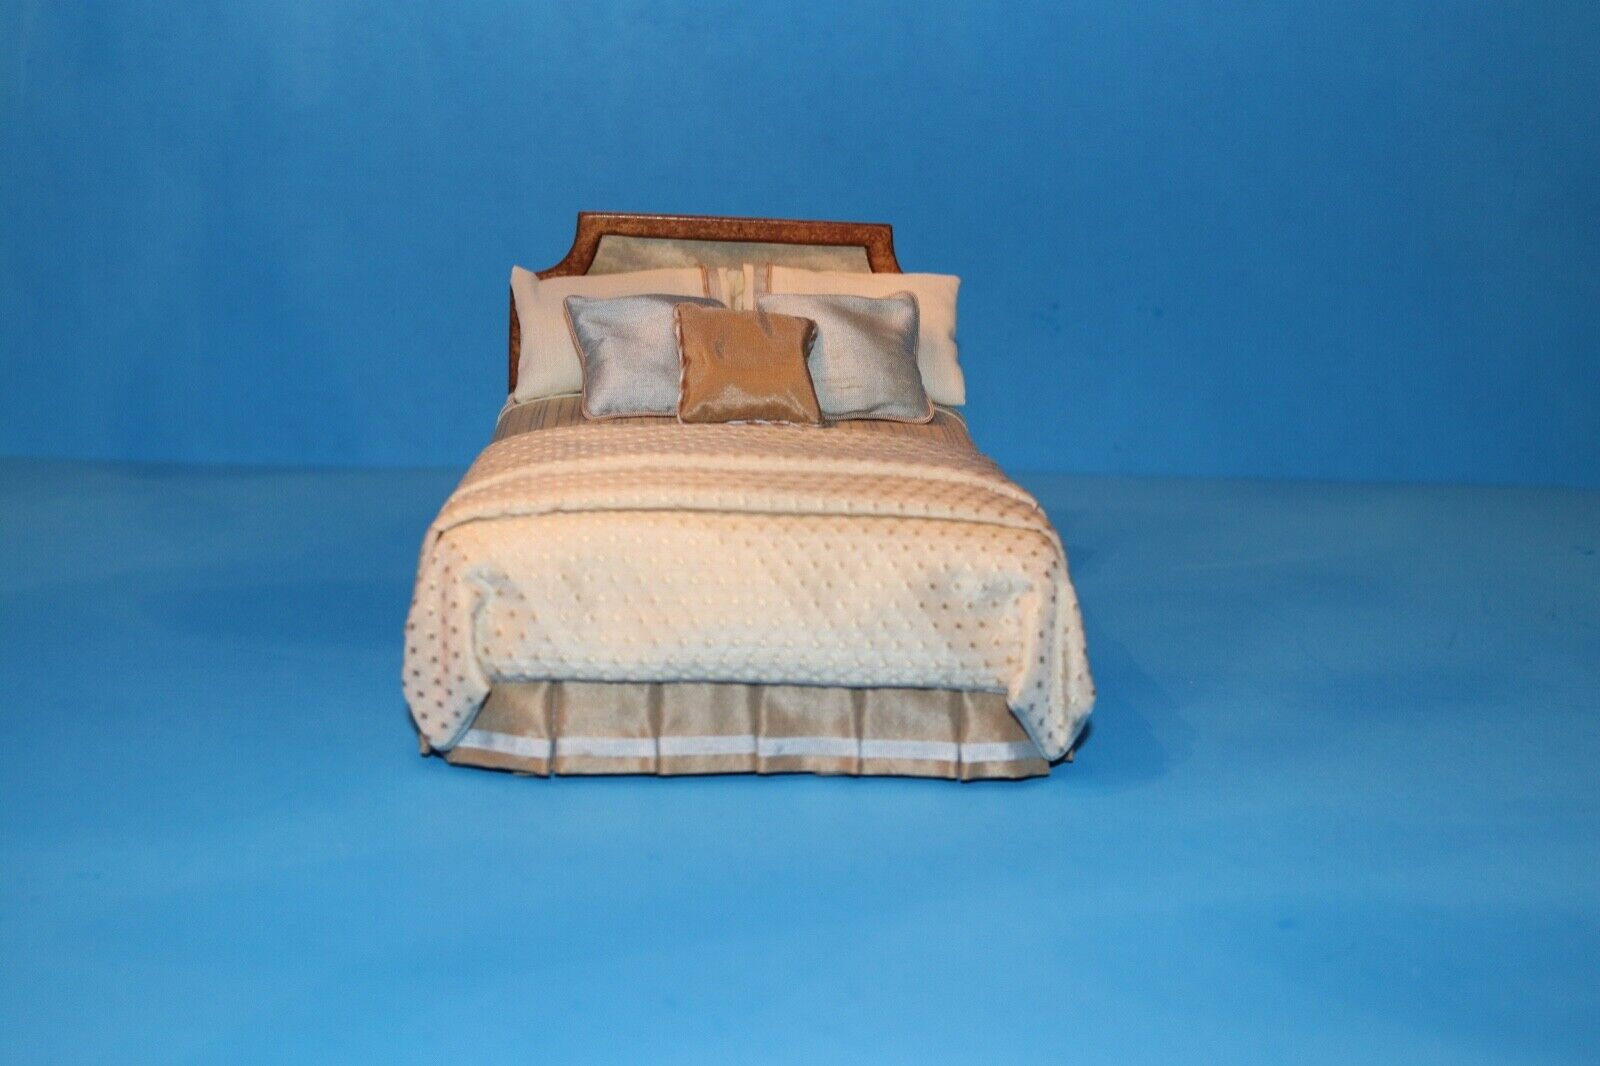 McBay Miniatures Dressed Bed Marcia McClain Artisan IGMA Dollhaus Miniature